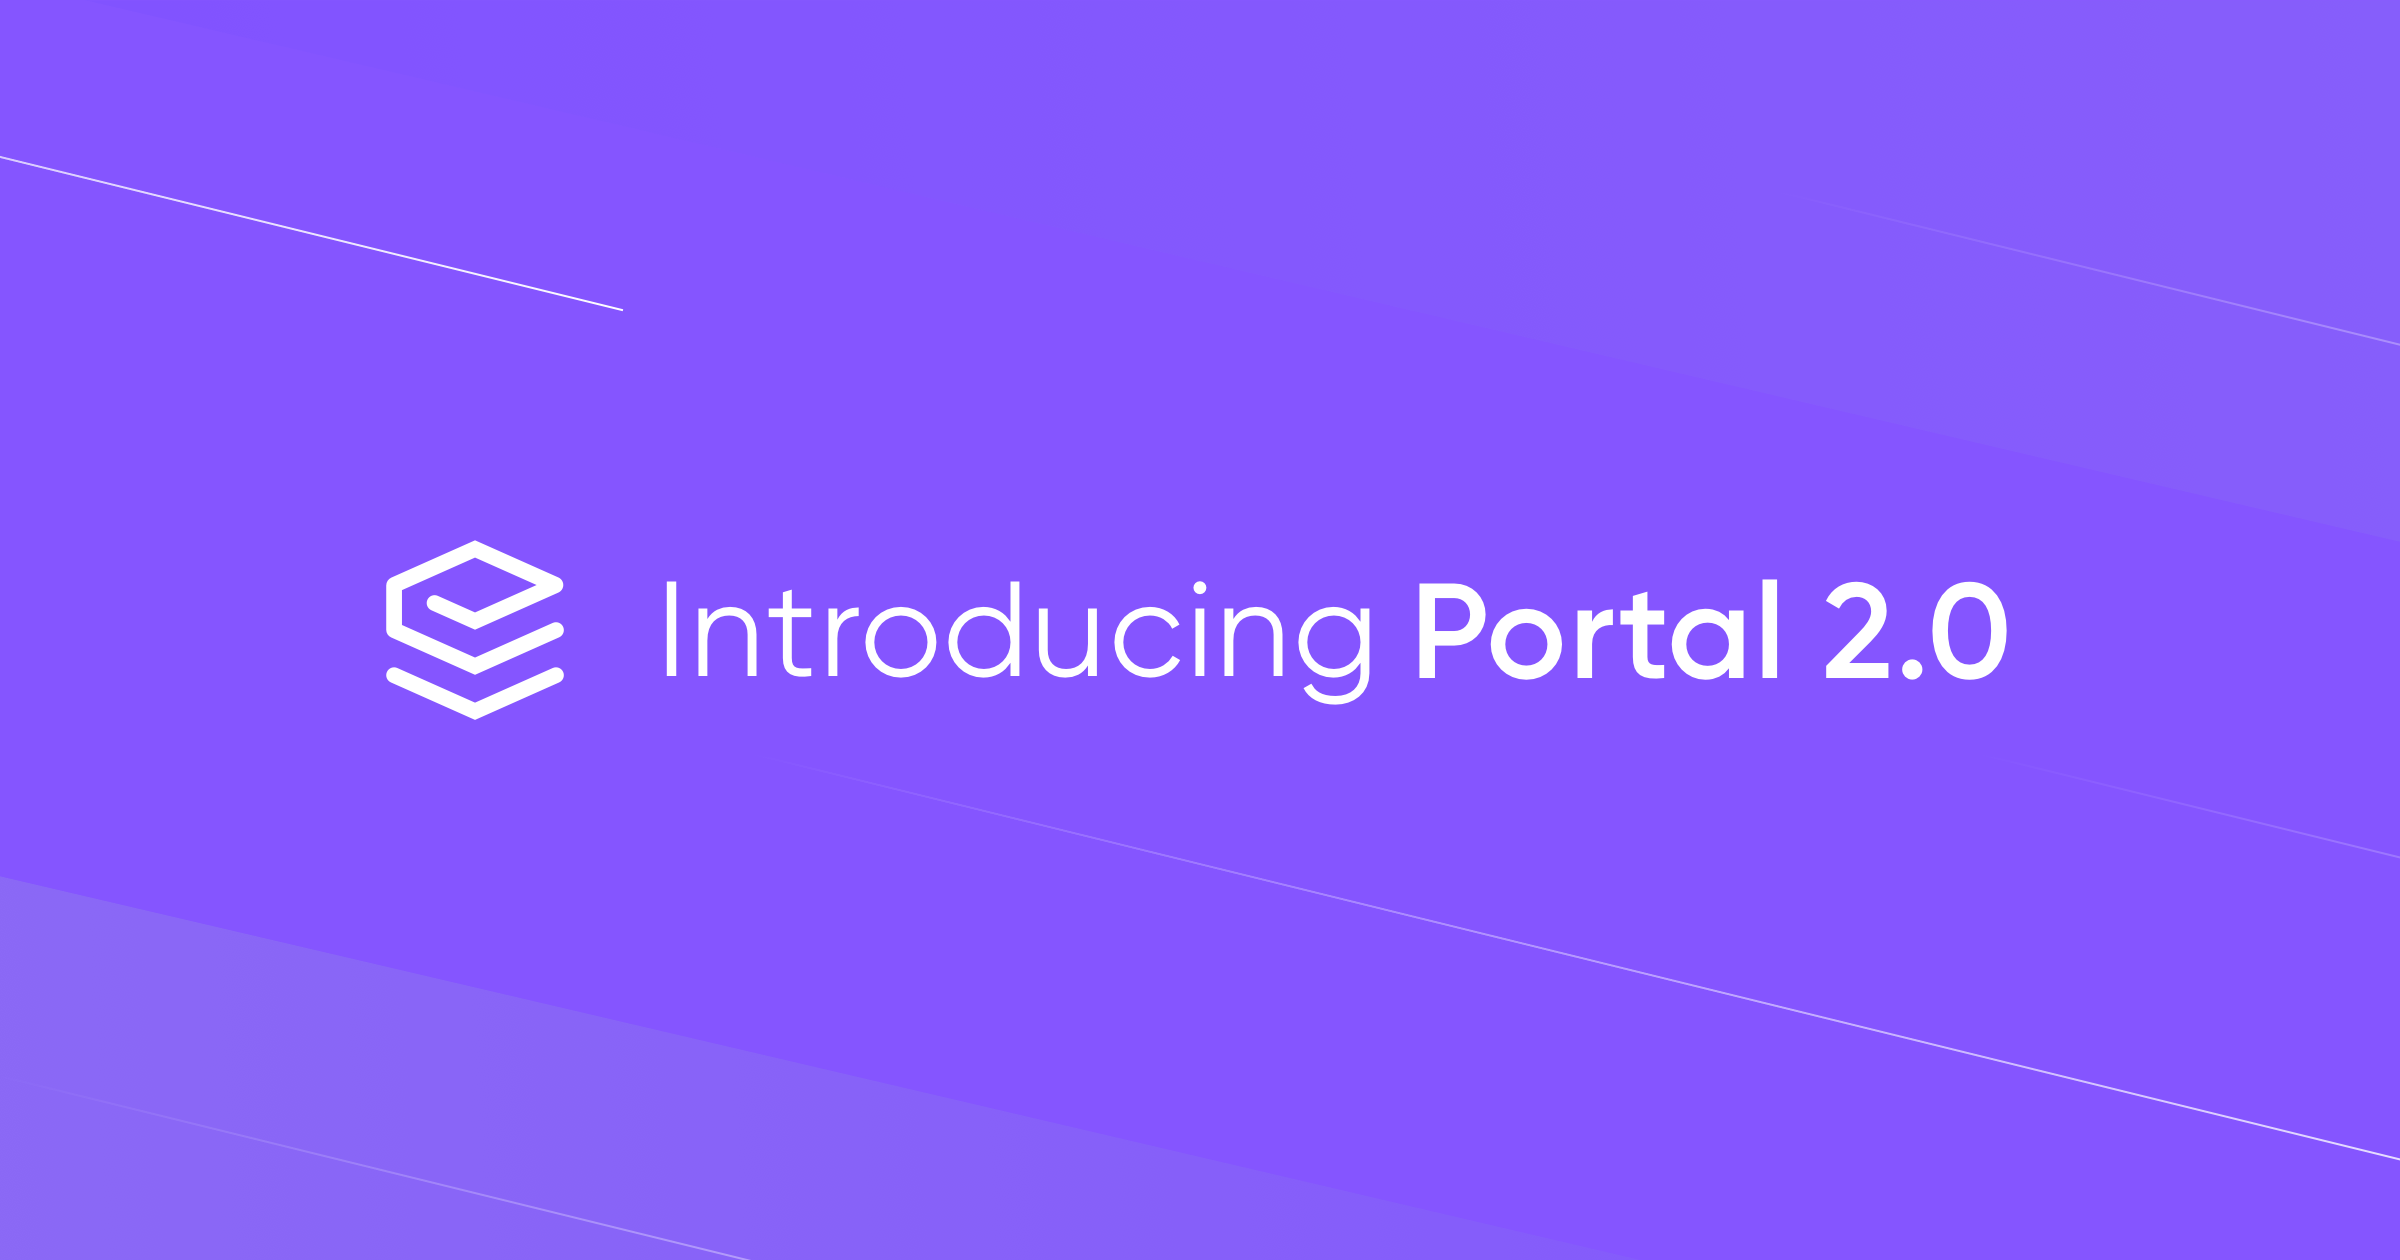 Flatfile.io - Introducing Portal 2.0